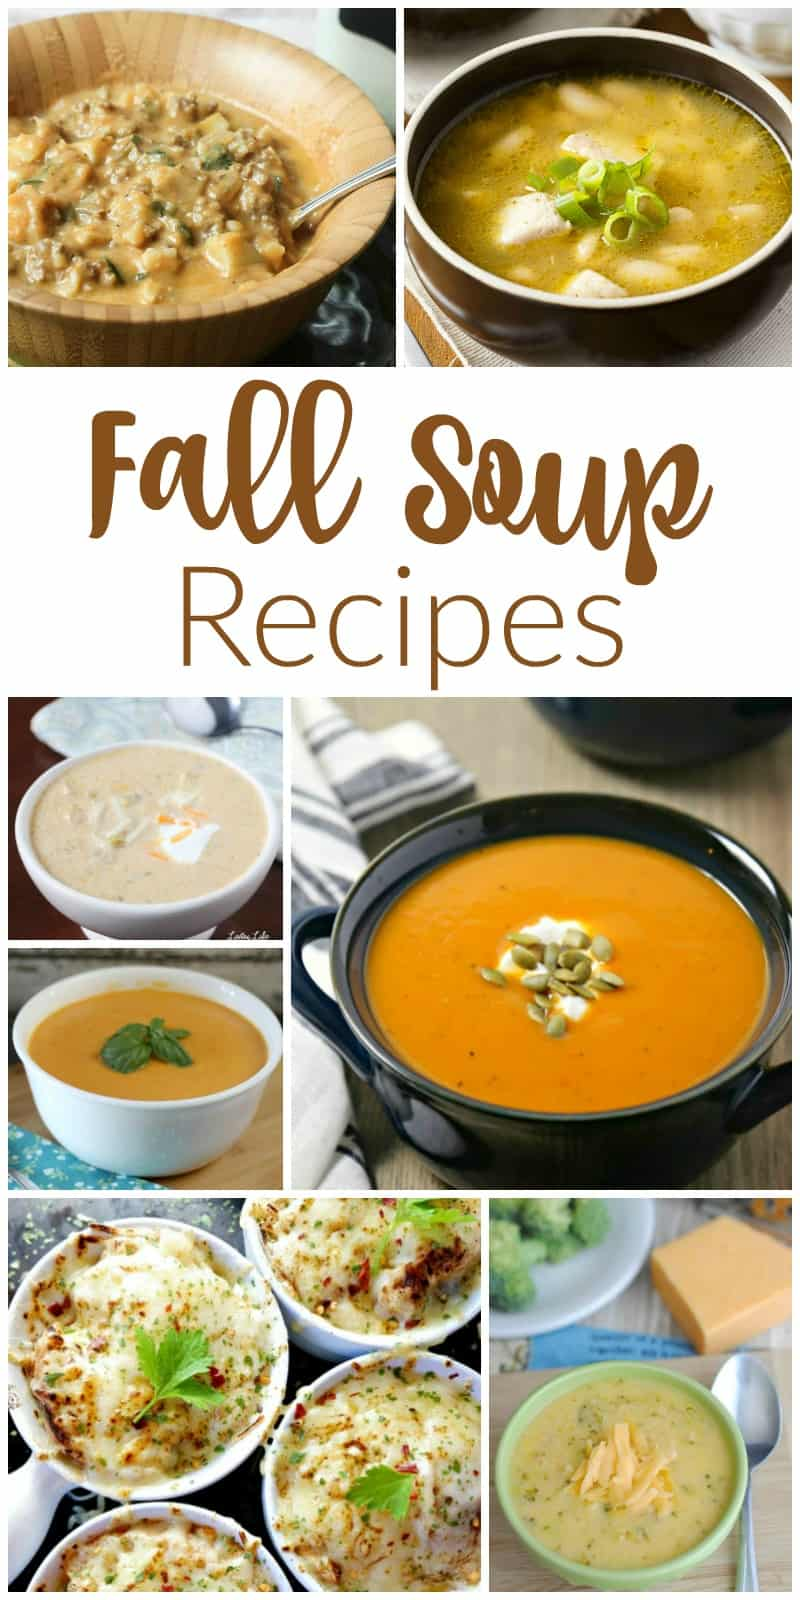 Fall Soup Recipes - Perfect Comfort Food For Fall